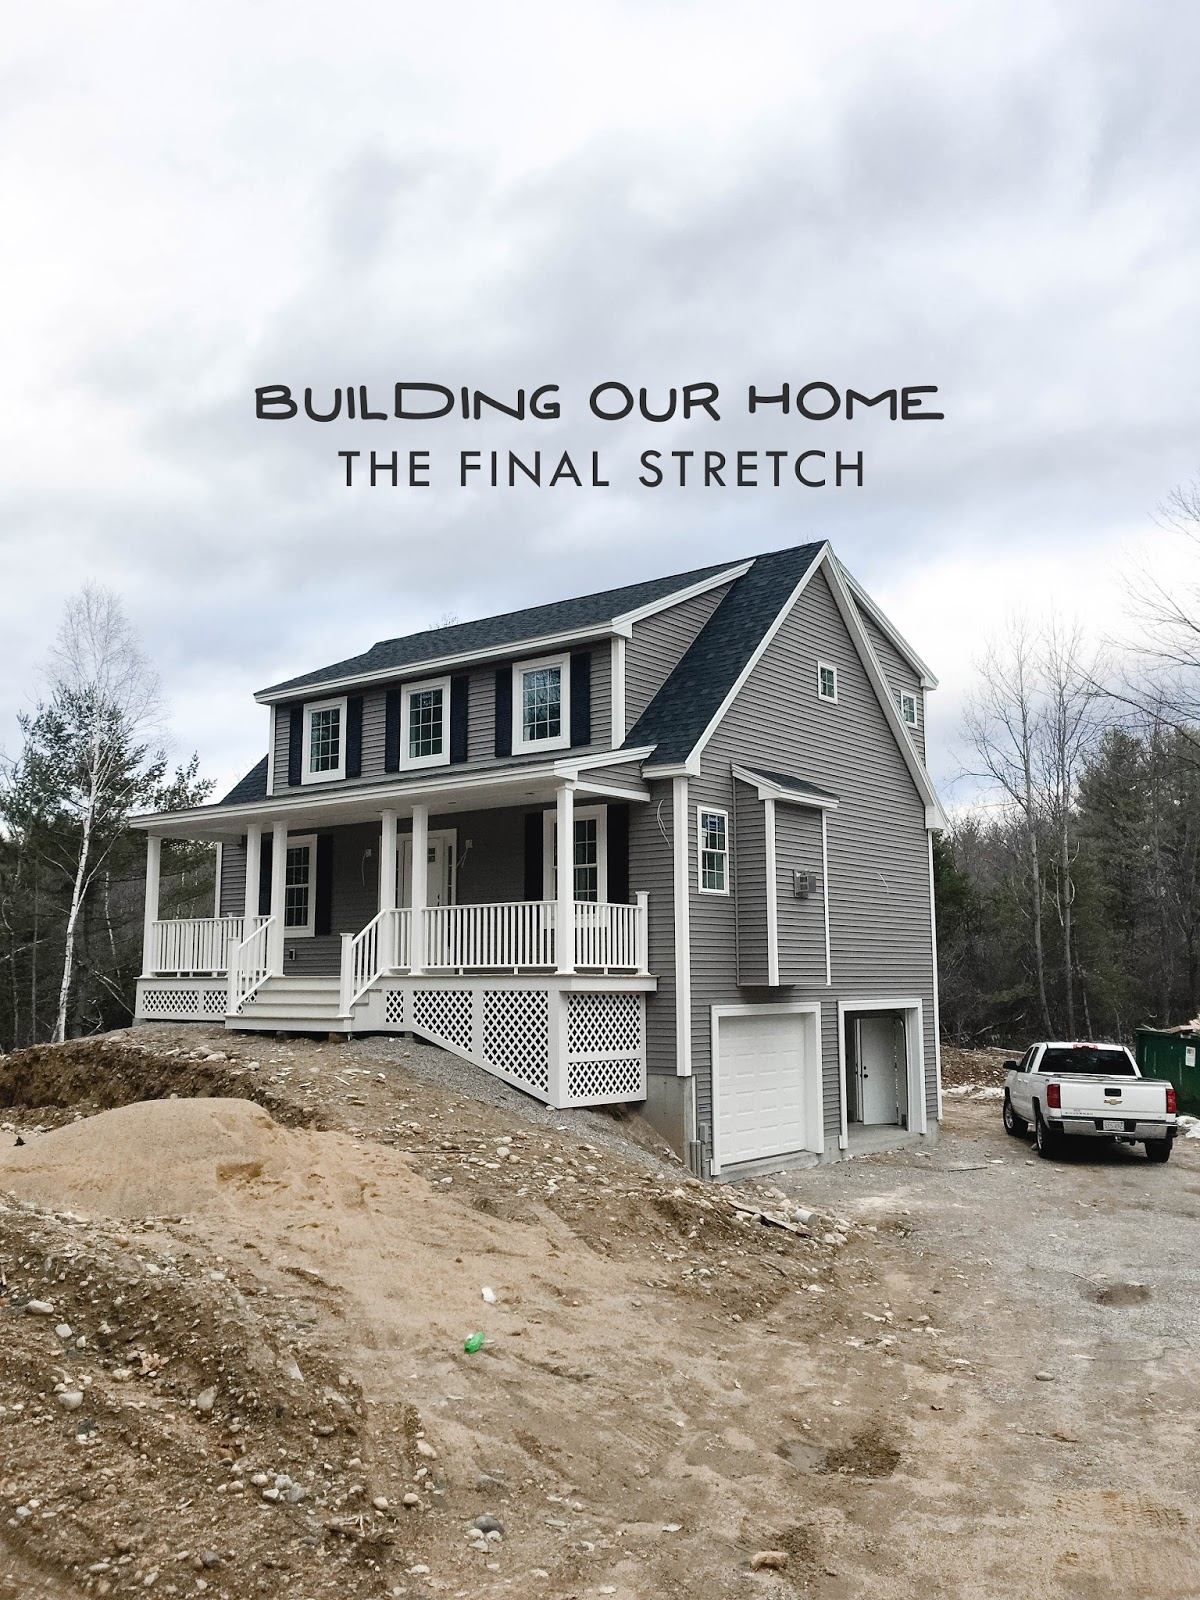 Building Our Home: The Final Stretch